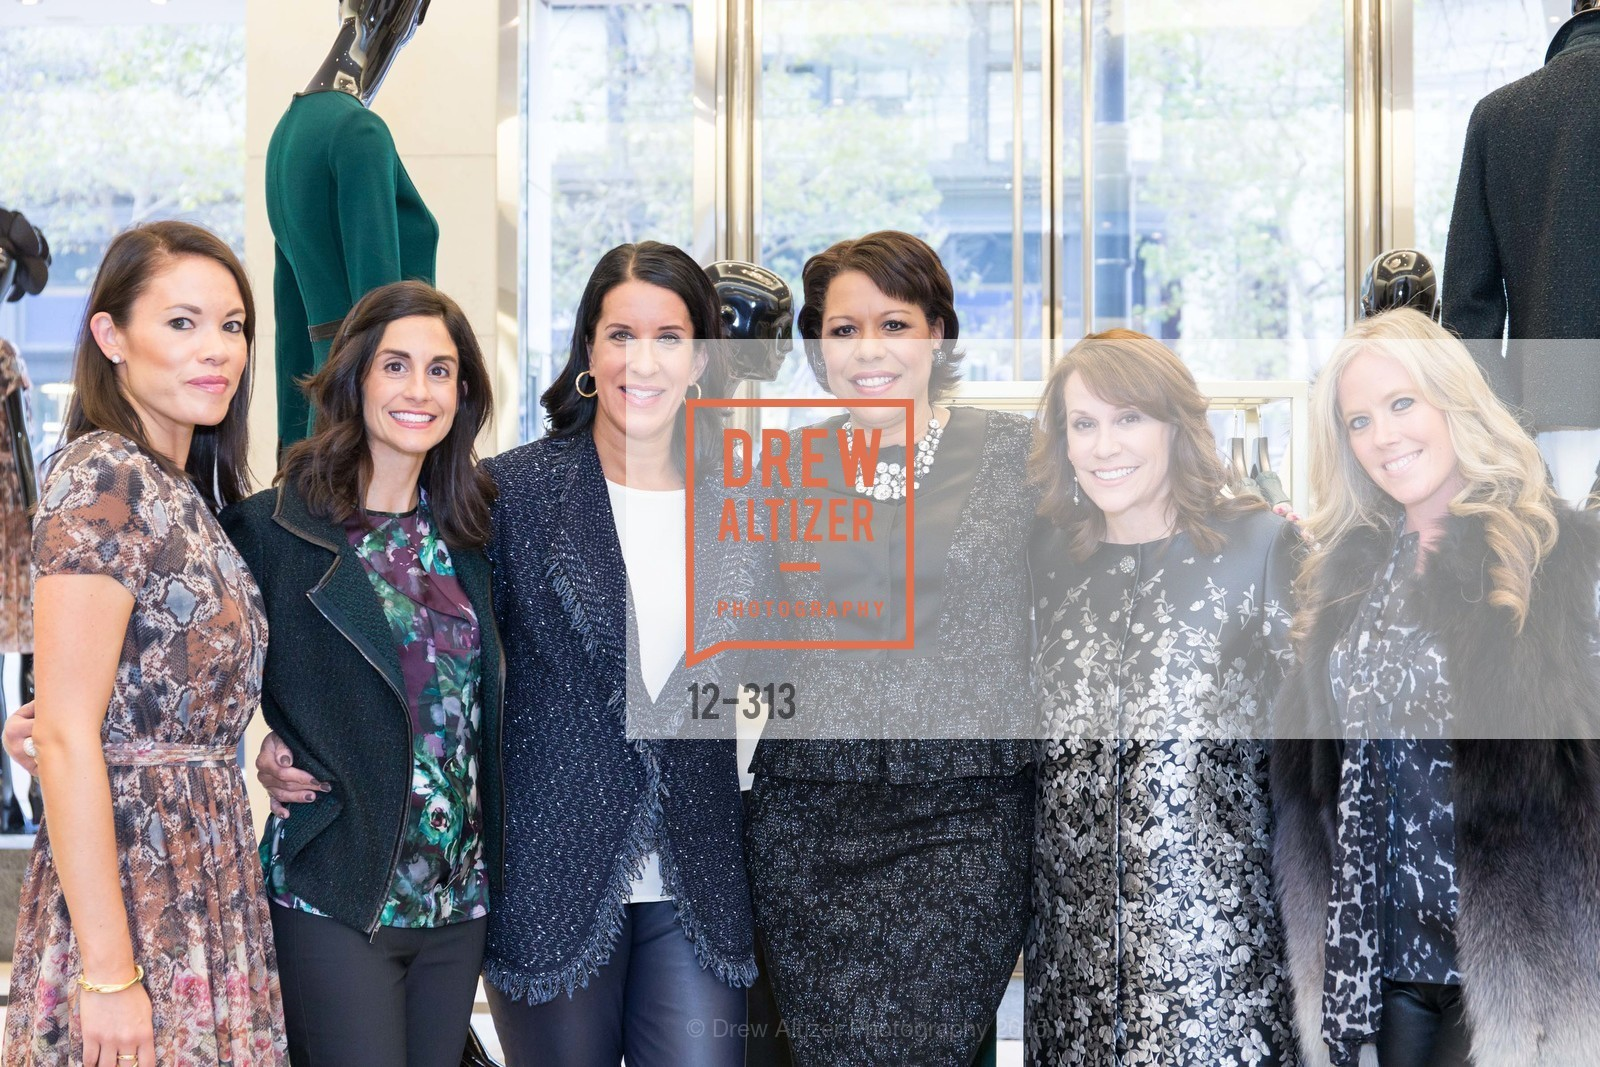 Jenelle Seltzer, Jennifer Carrillo, Lita Saveikis, Michelle Jacobsen, Kate DeBernardi, Deb Arthur, St. John in Converstation, St John Boutique, September 24th, 2015,Drew Altizer, Drew Altizer Photography, full-service agency, private events, San Francisco photographer, photographer california